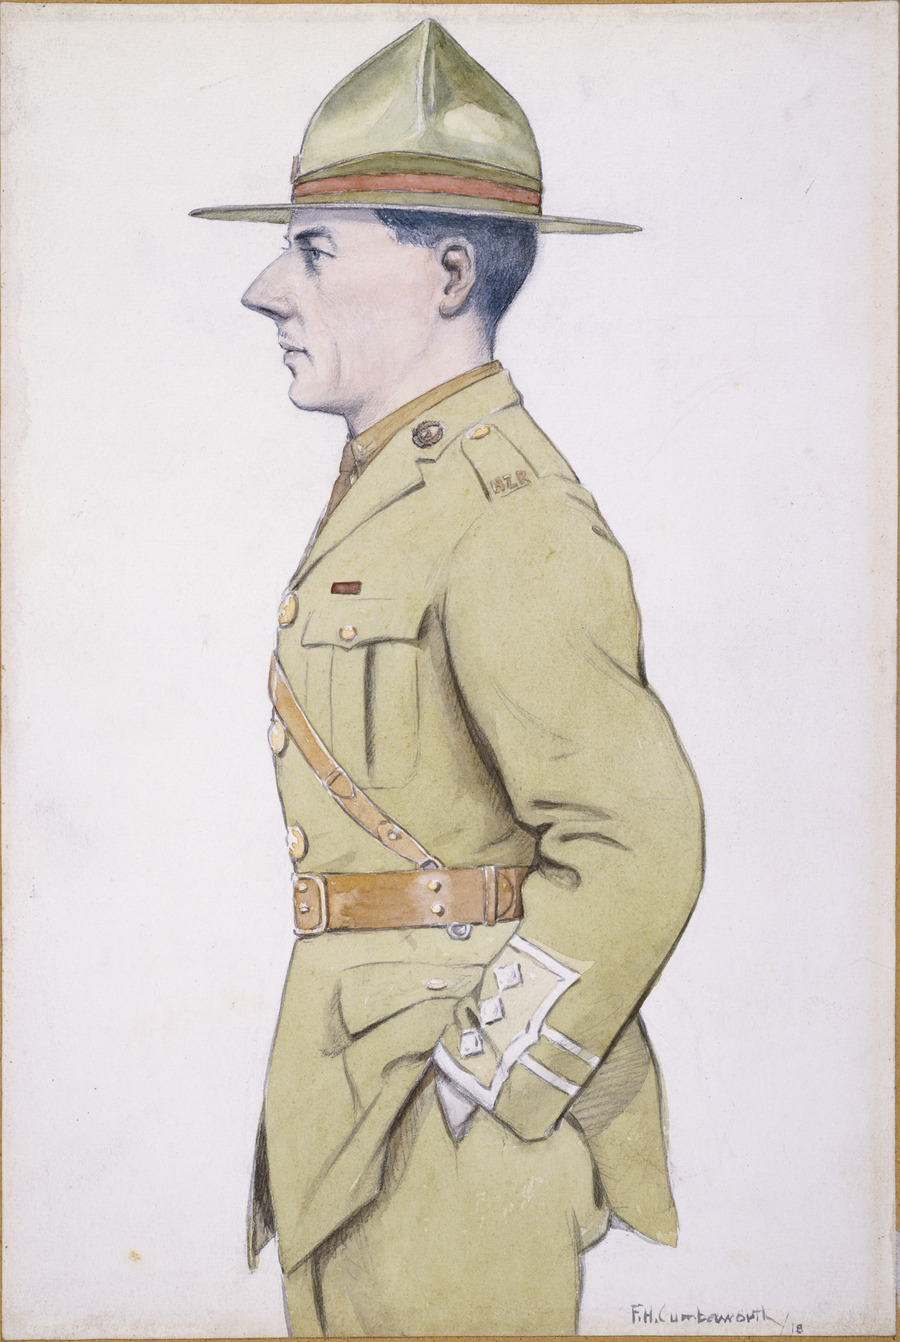 Captain McPherson, Adjutant, Codford Command Depot